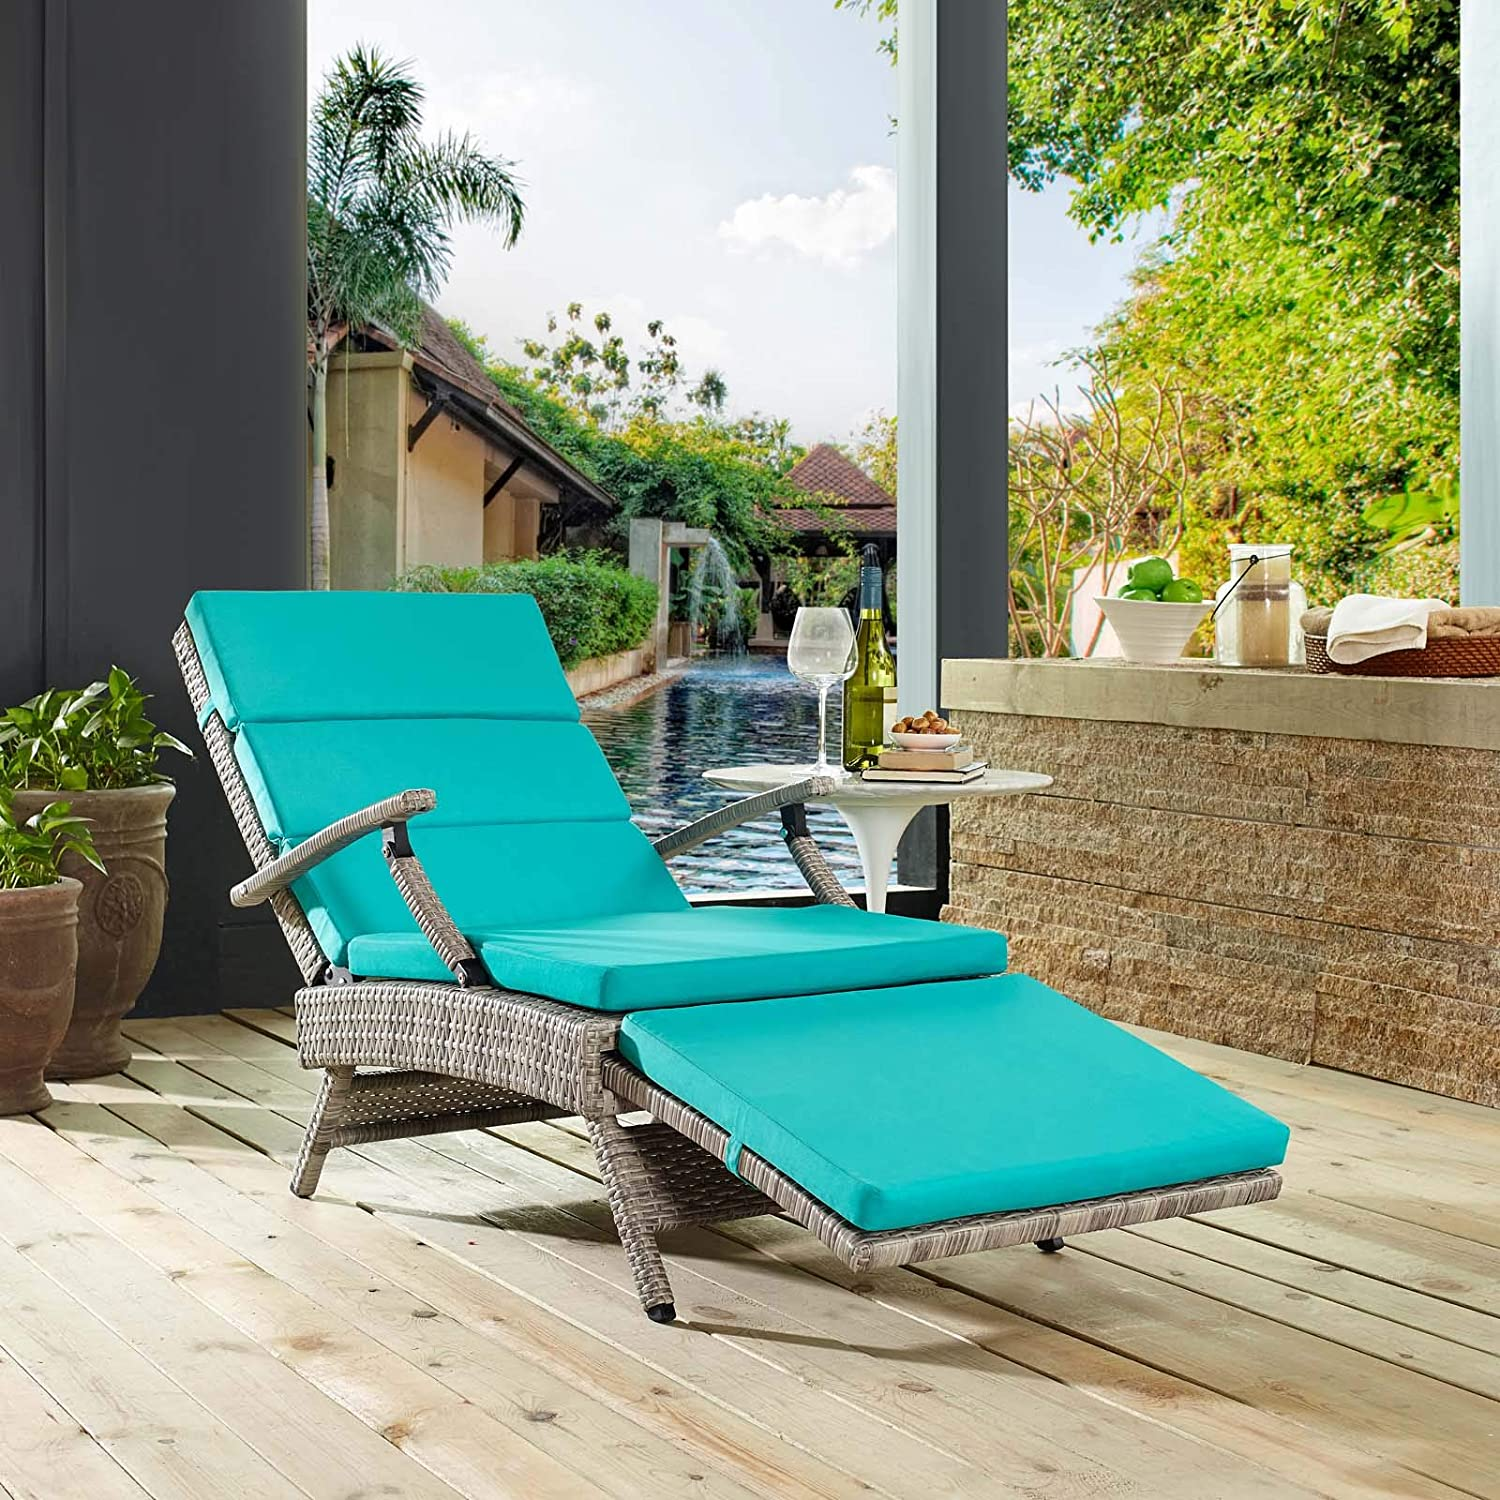 Modway Envisage Outdoor Patio Wicker Rattan Chaise Lounge in Light Gray Turquoise